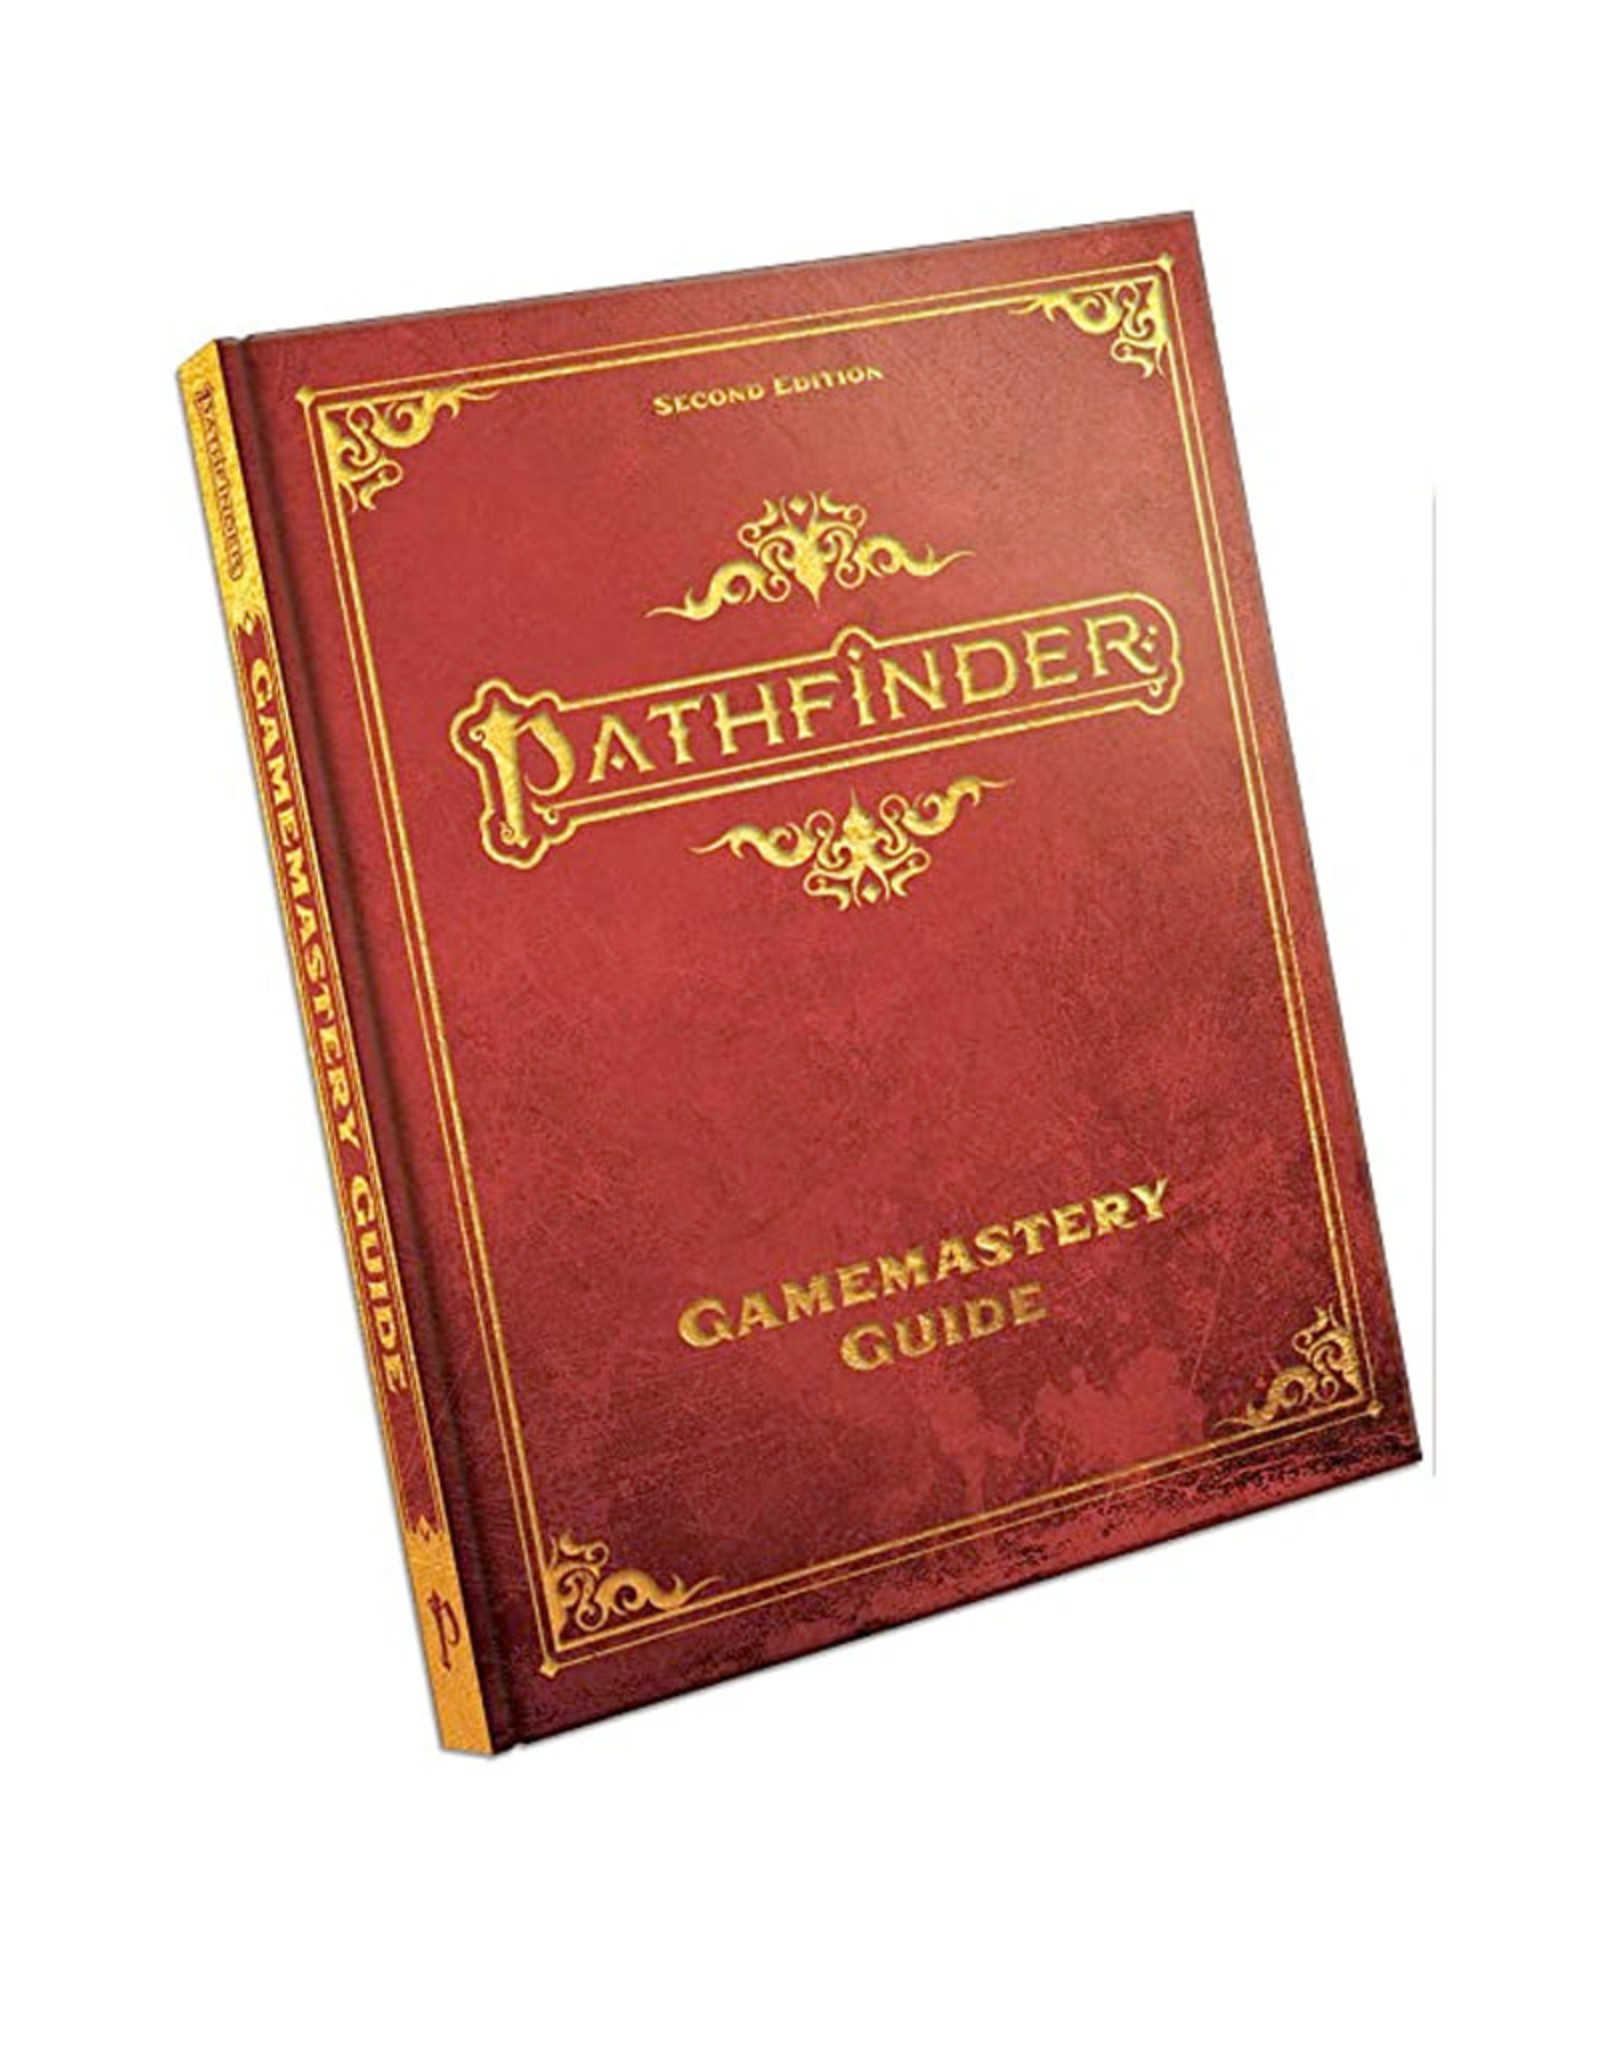 Paizo Pathfinder RPG Gamemastery Guide (Special Edition Hardcover)